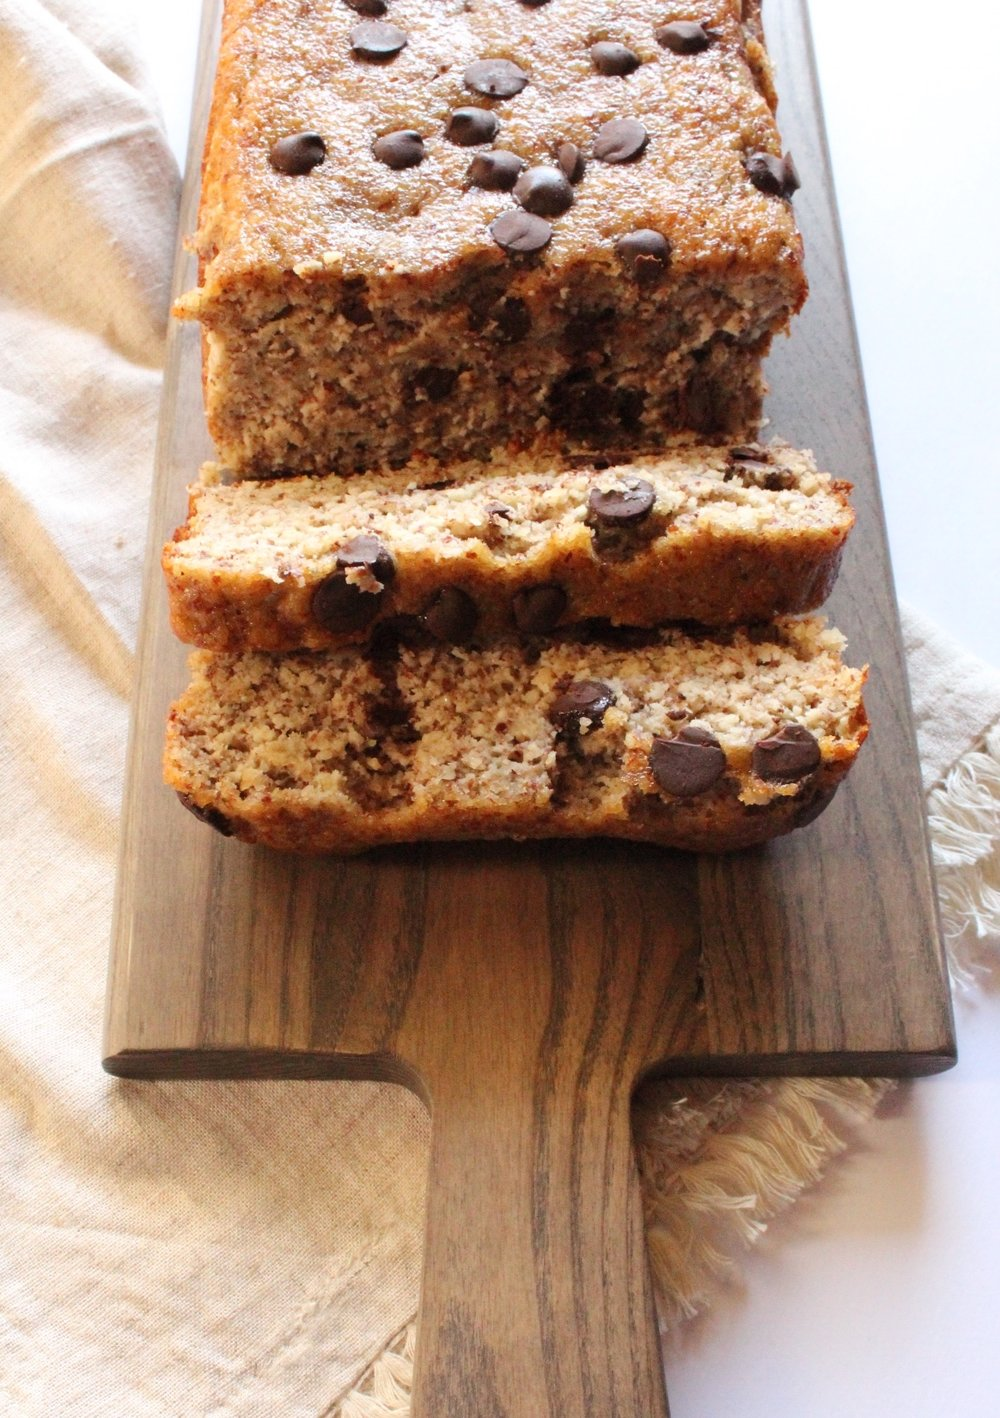 Chocolate Chip Banana Bread Gluten & Dairy-Free